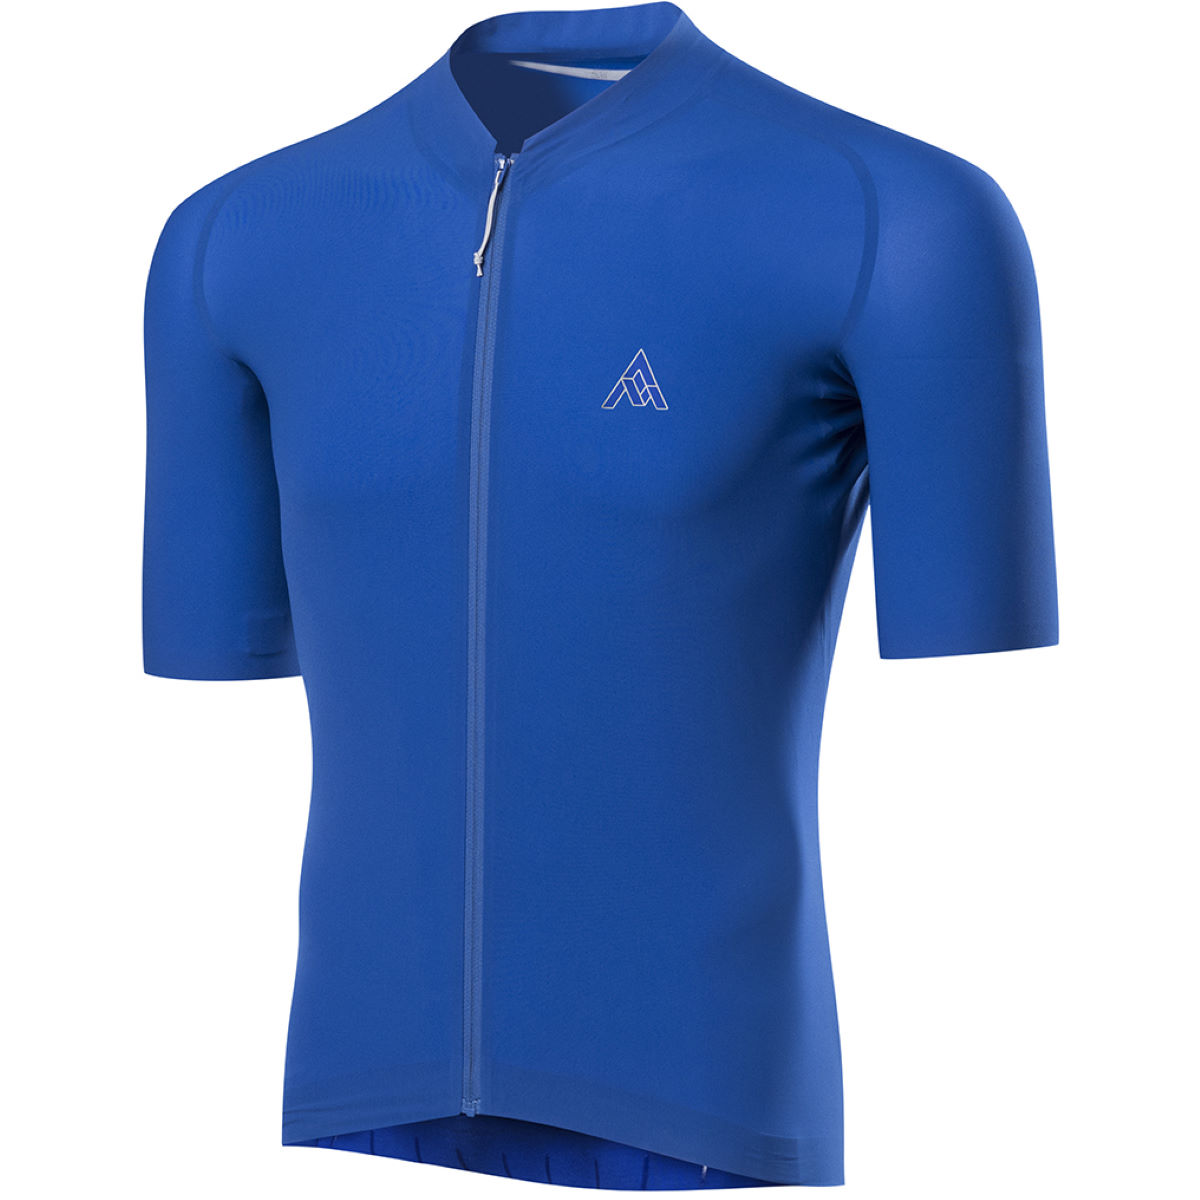 Maillot 7Mesh Highline Superlight (manches courtes) - XL Maillots